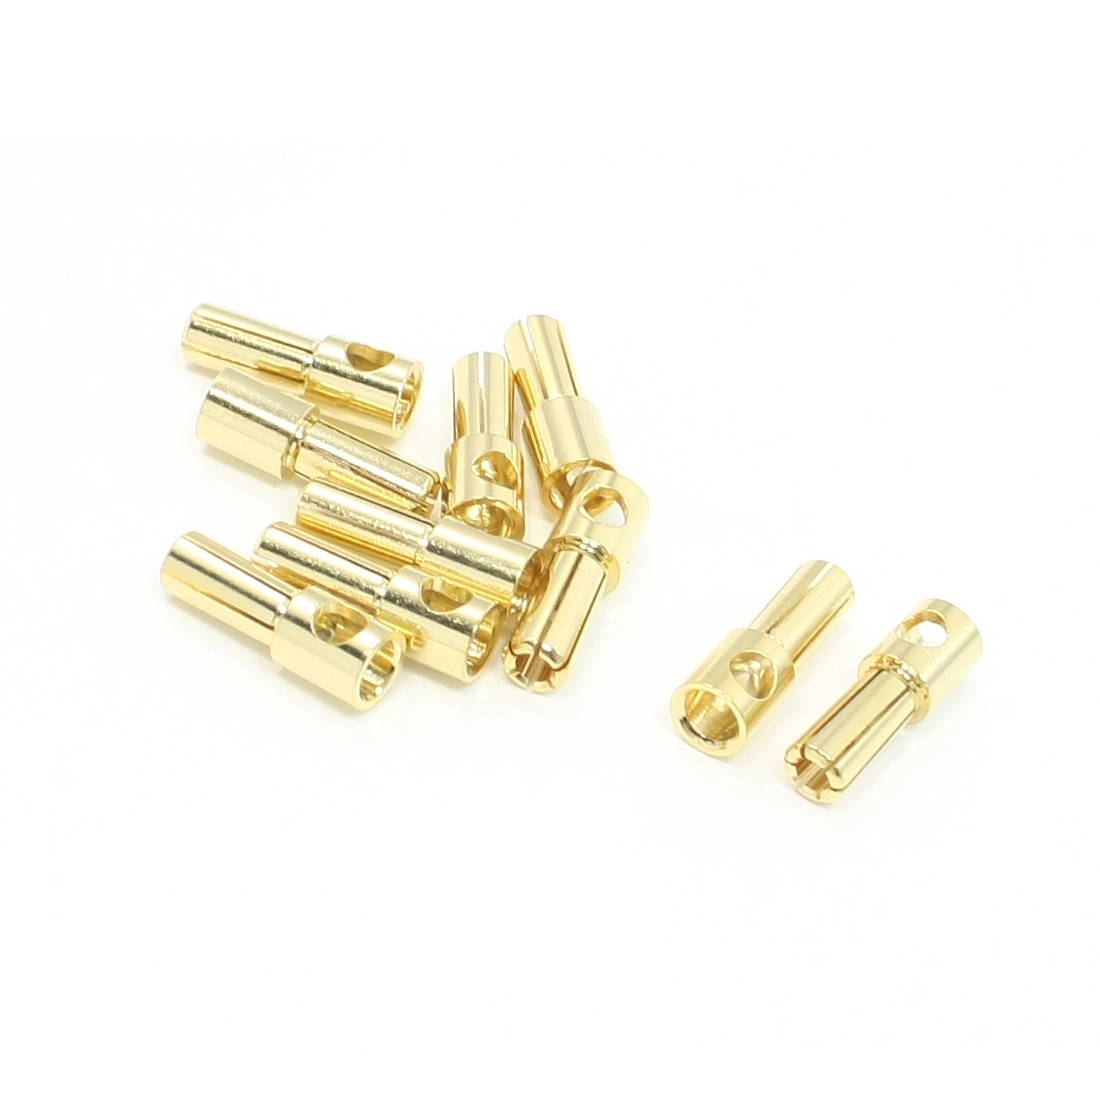 10pcs RC Model Li-Po Battery Male Banana Connector Plug 5mm Diameter